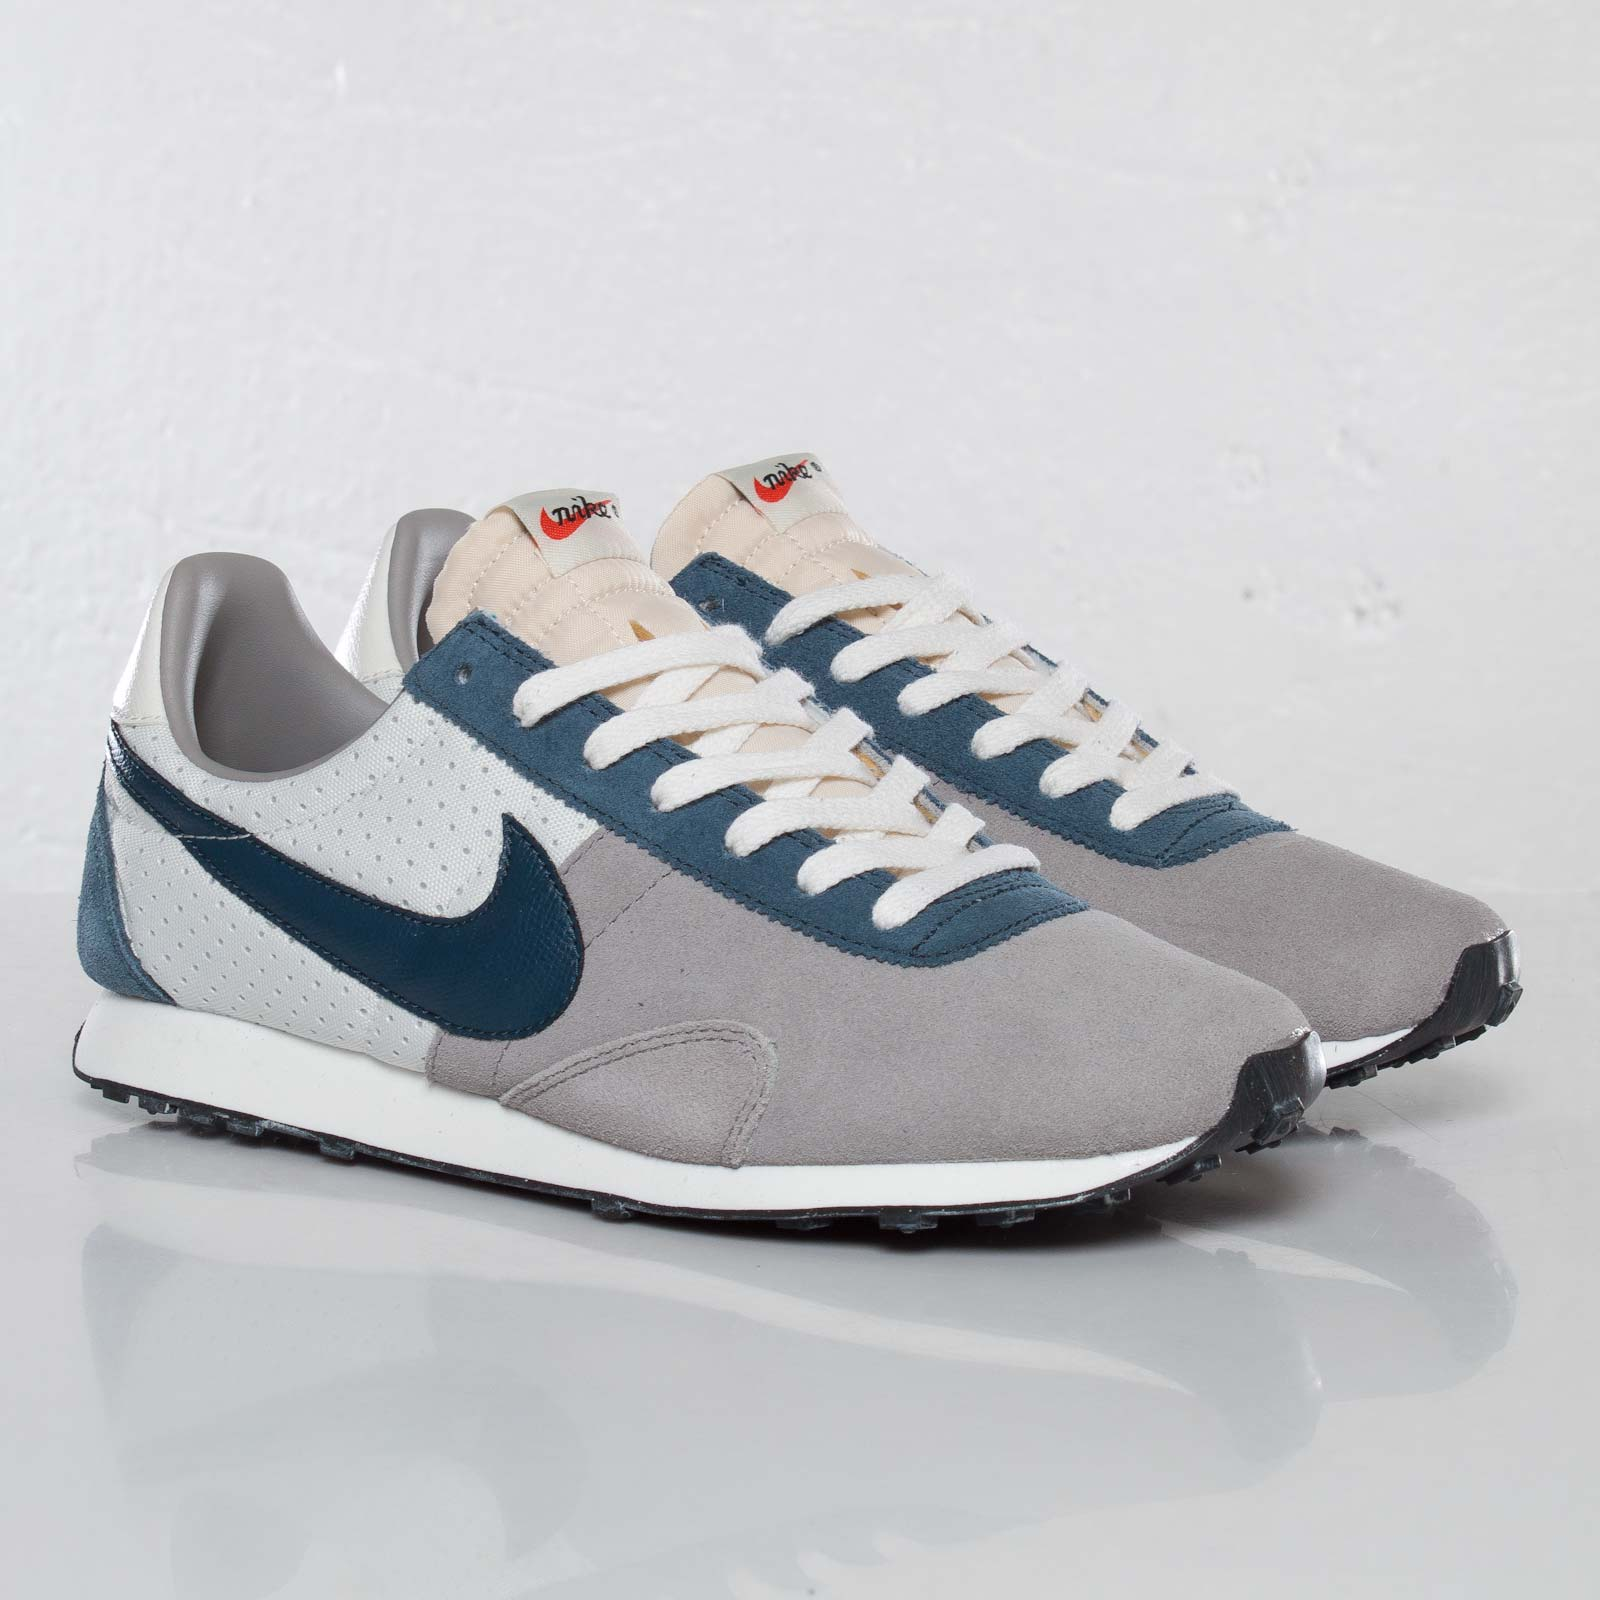 new arrival 274db 0452b ... Nike Pre Montreal Racer ...